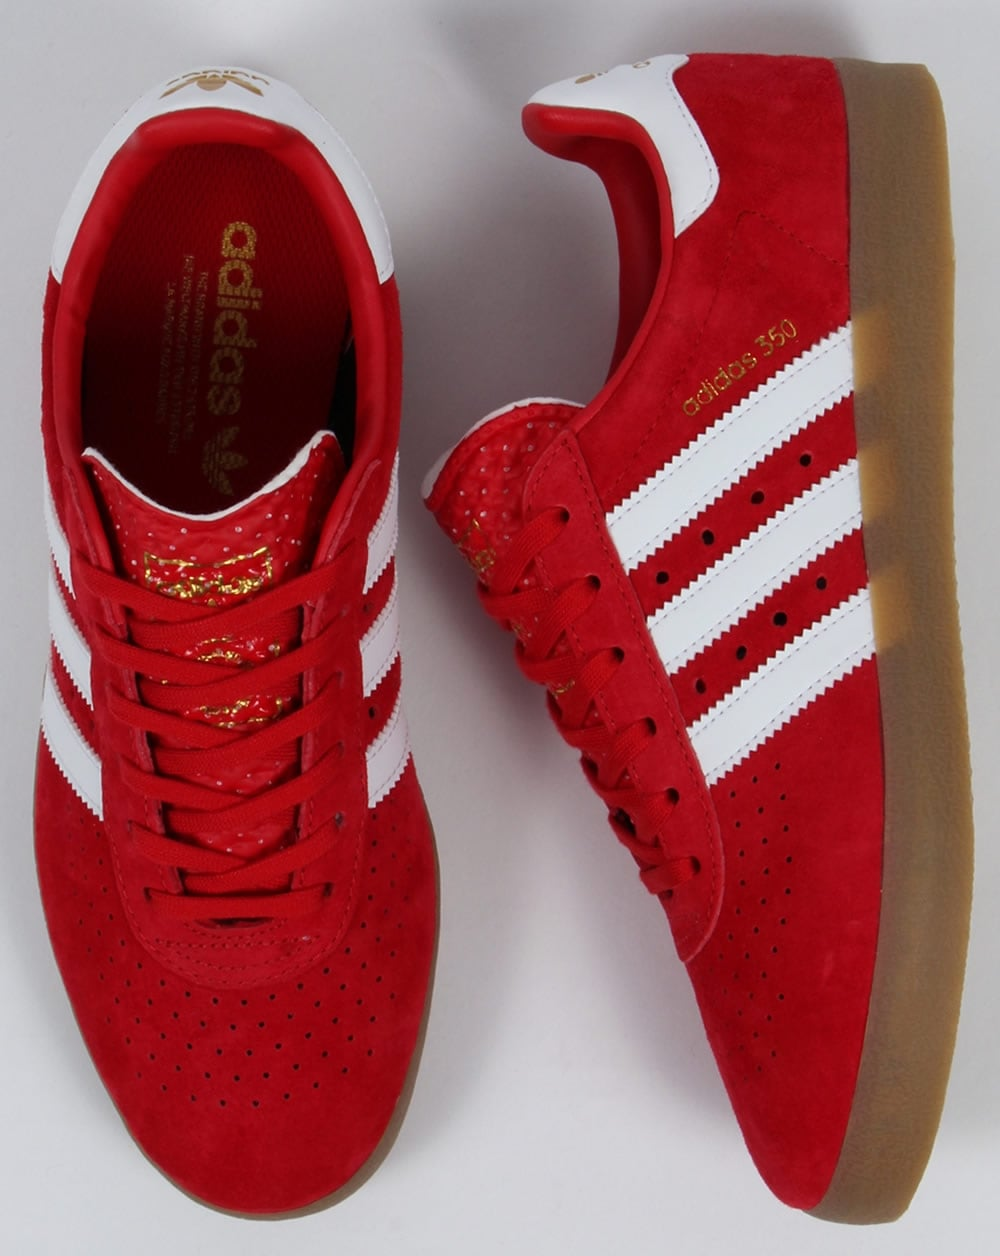 adidas red shoes. adidas 350 trainers red/white/gum red shoes